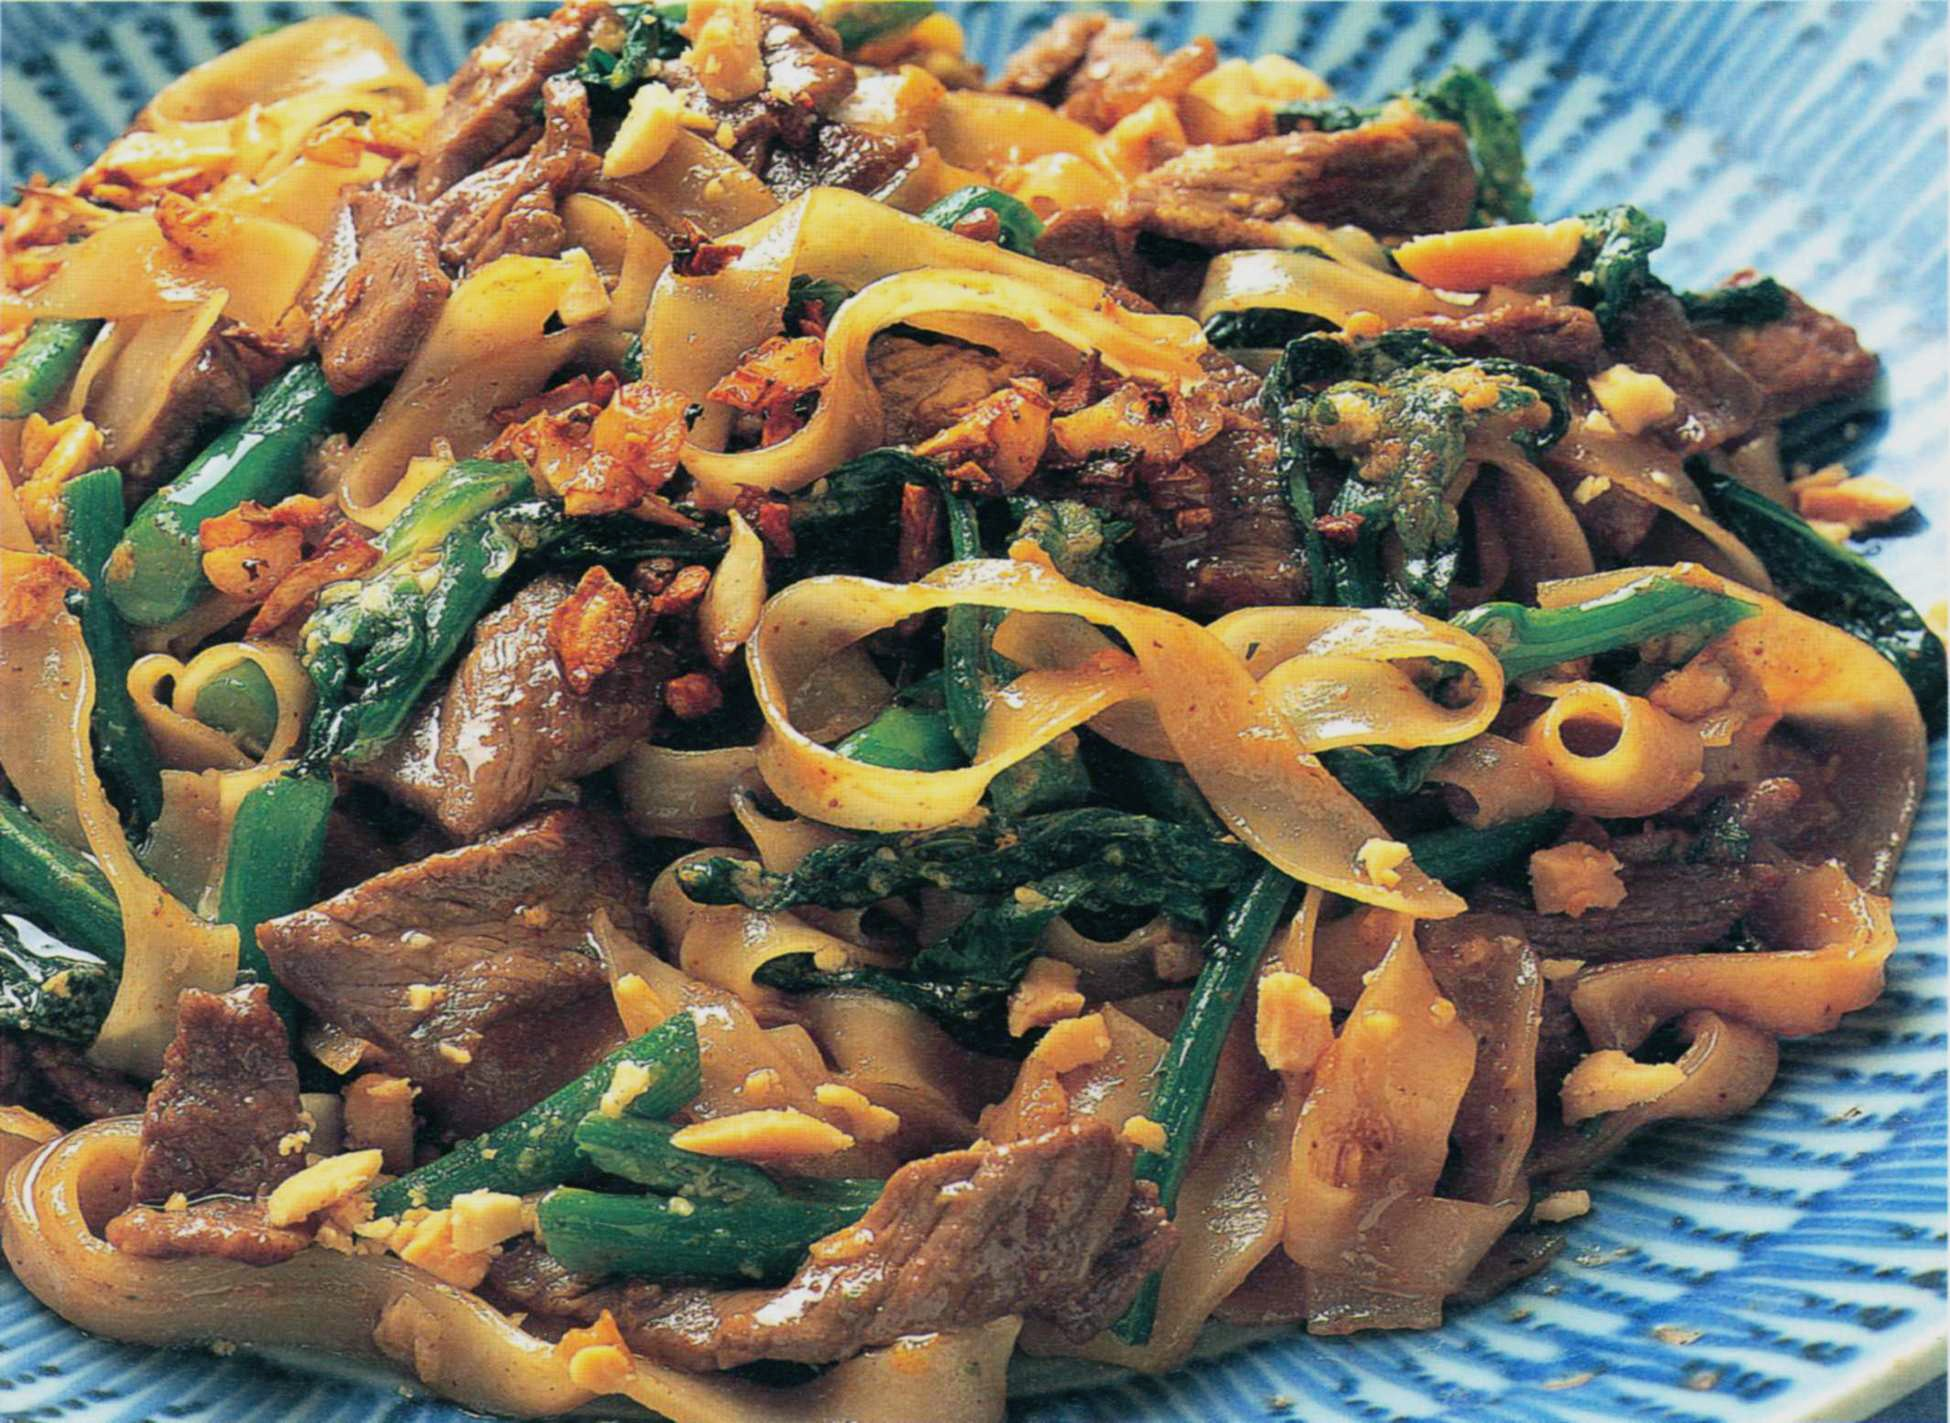 Stir Fried Rice Noodles With Beef And Broccoli From Ken Hom Cooks Thai By Ken Hom